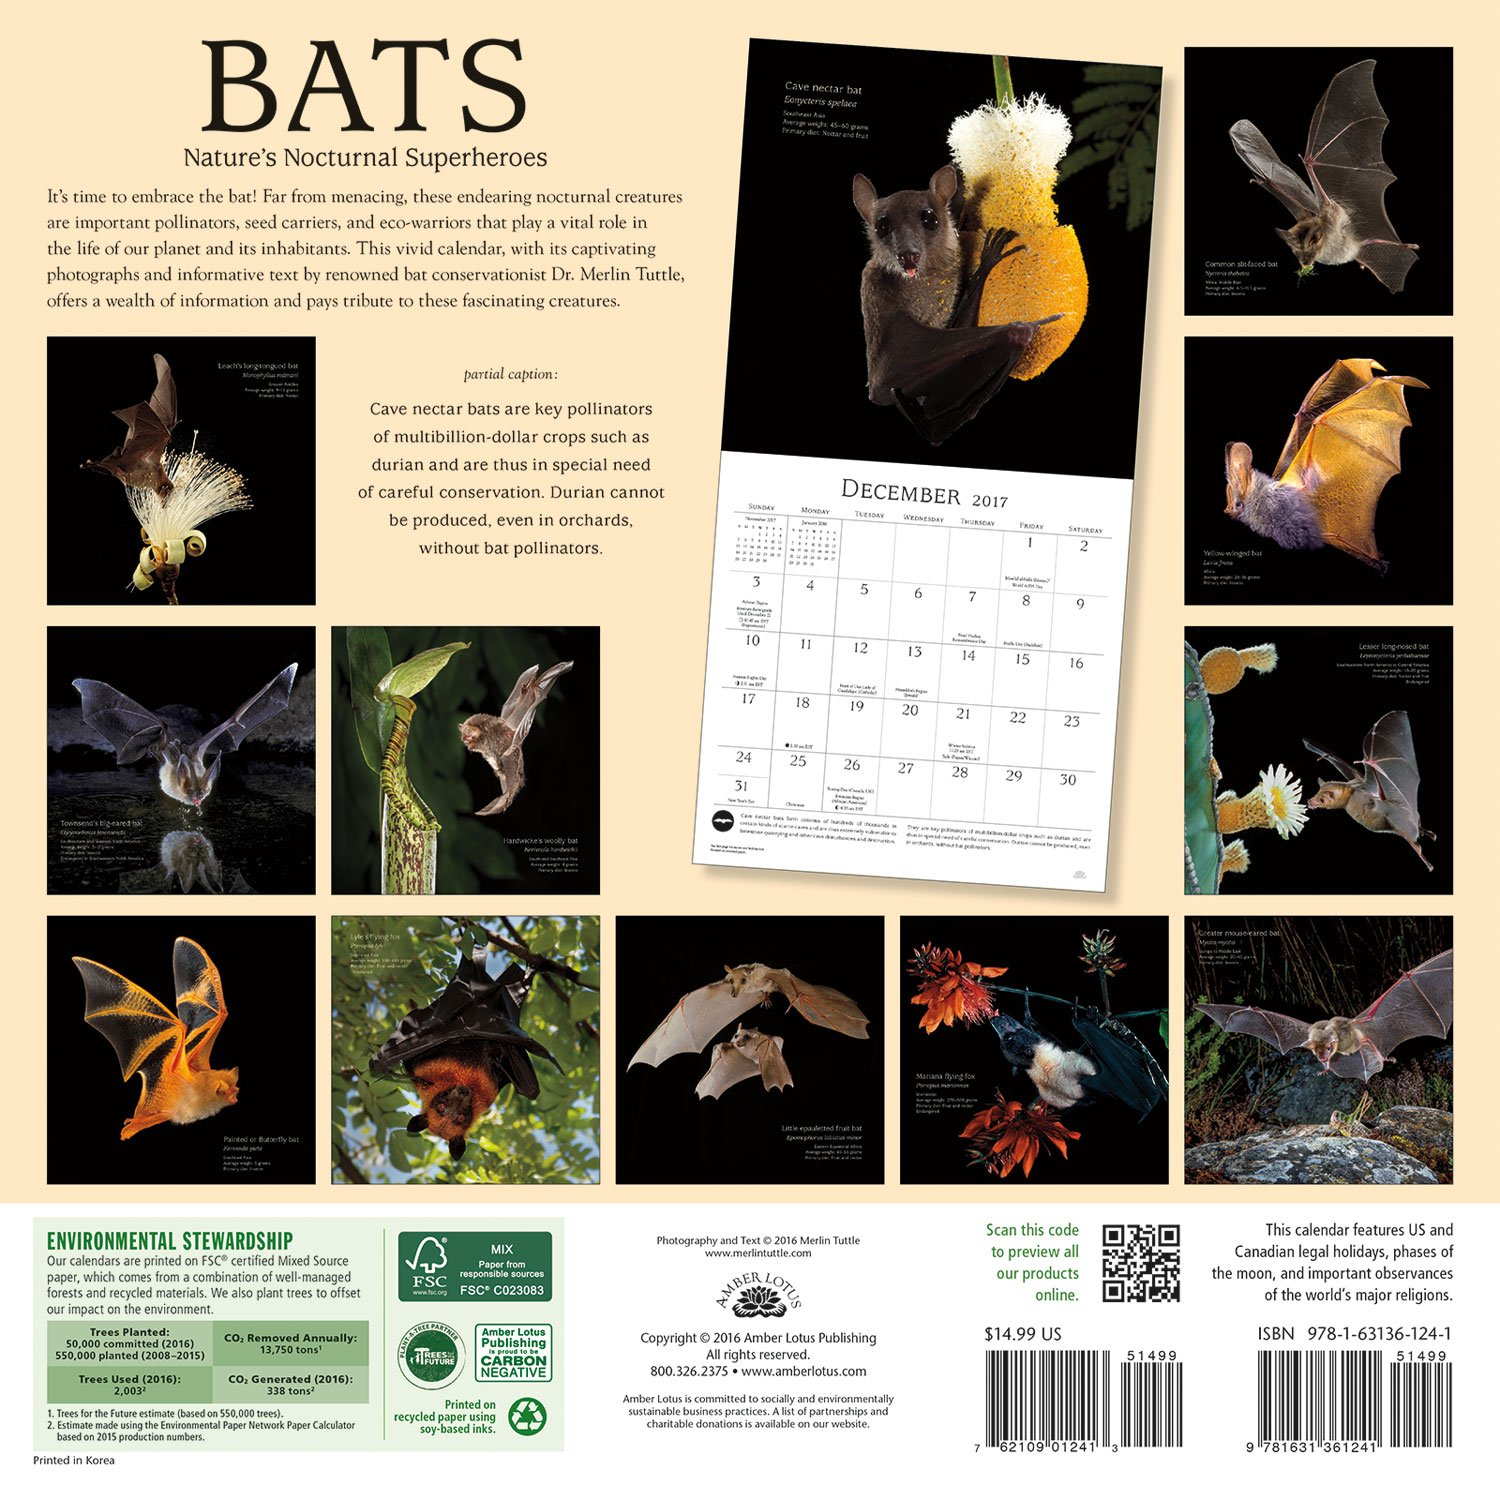 Bats 2017 Wall Calendar Natures Nocturnal Superheroes Merlin D Animal Cell Diagram Labeled Search Results 2015 Tuttle Amber Lotus Publishing 9781631361241 Books